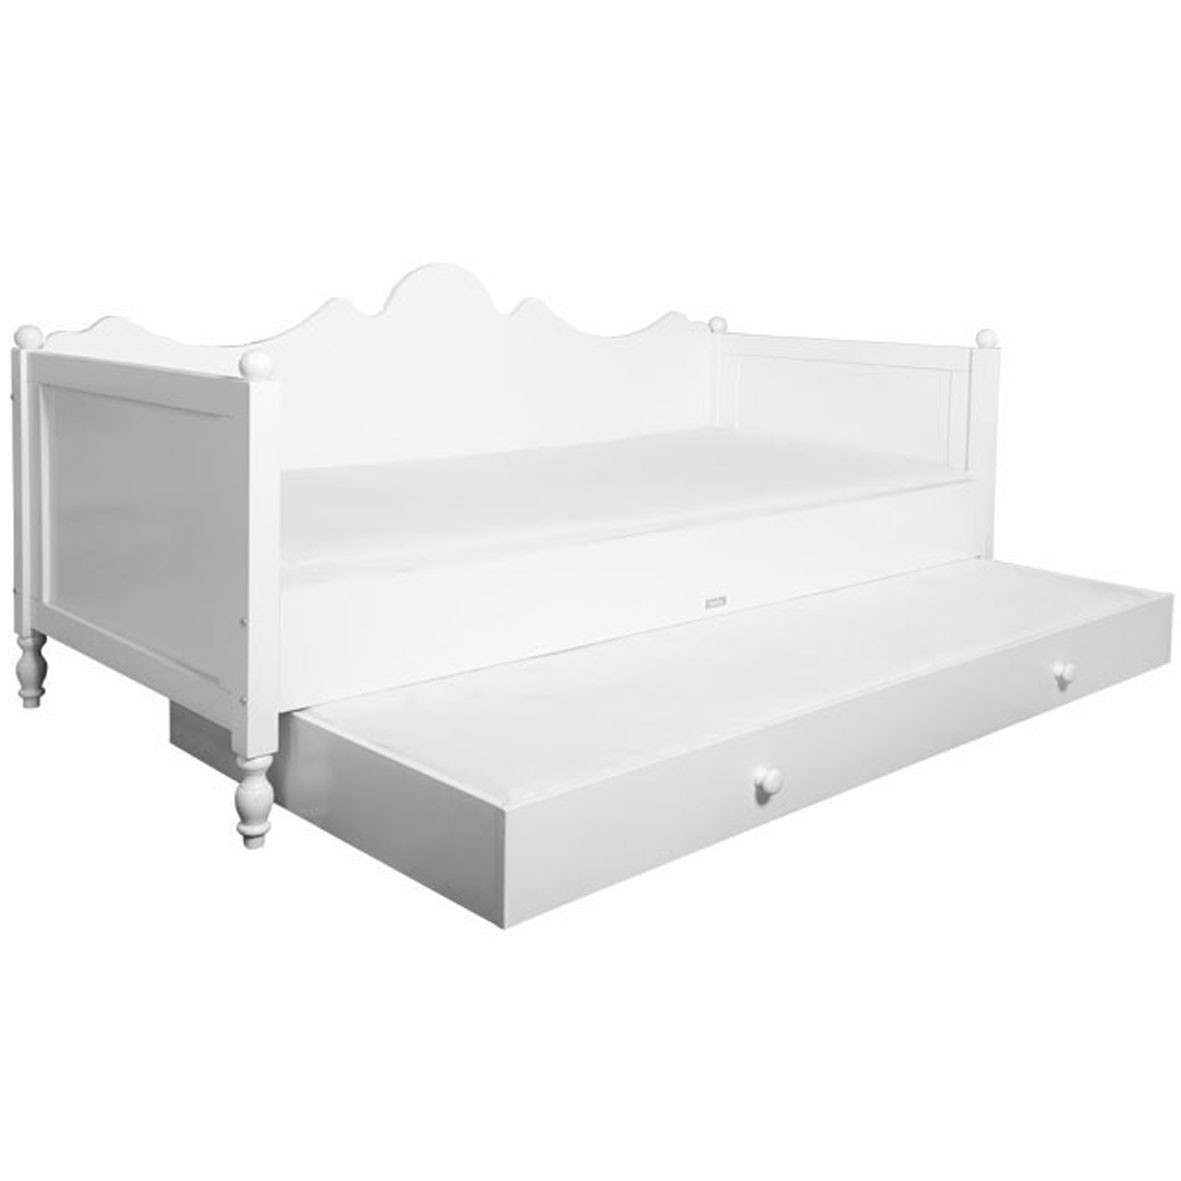 Belle white bench bed by bopita mylittleroom - Lit banquette double ...